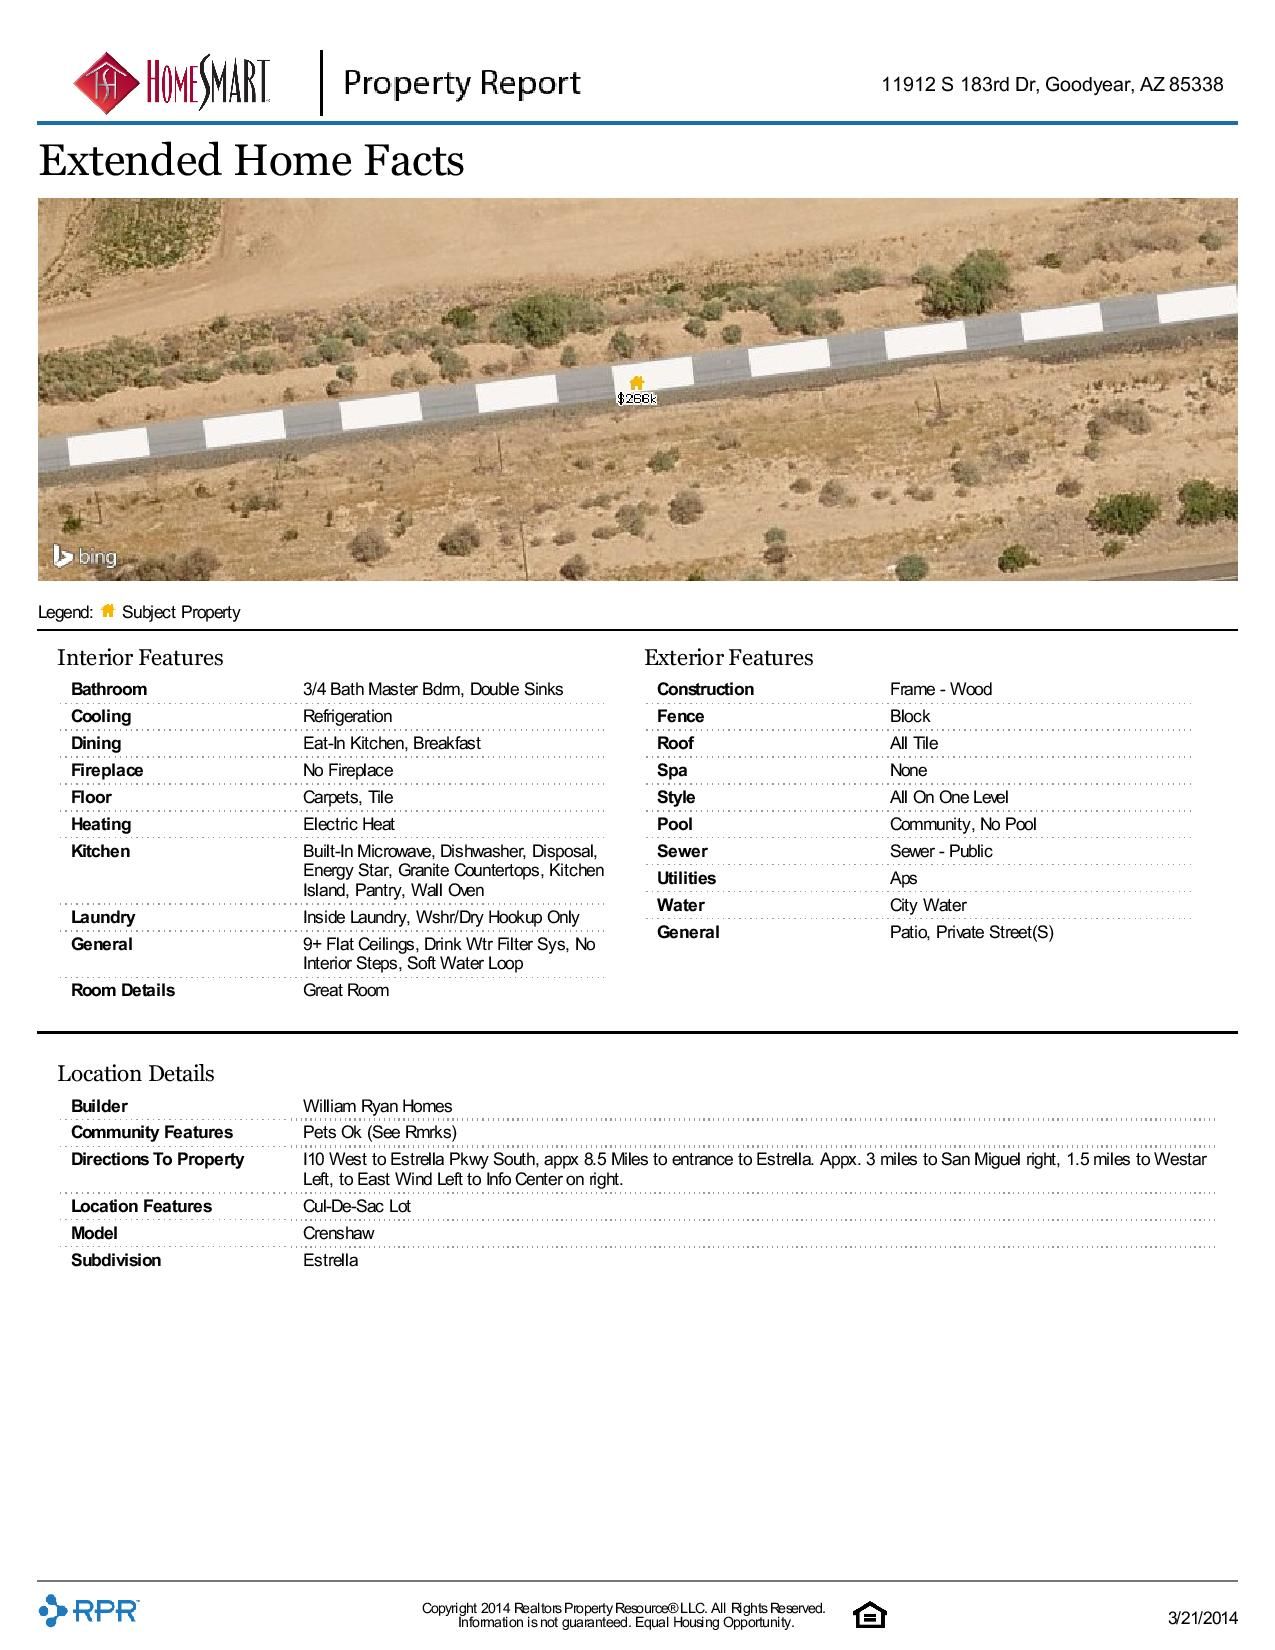 11912-S-183rd-Dr-Goodyear-AZ-85338-page-004